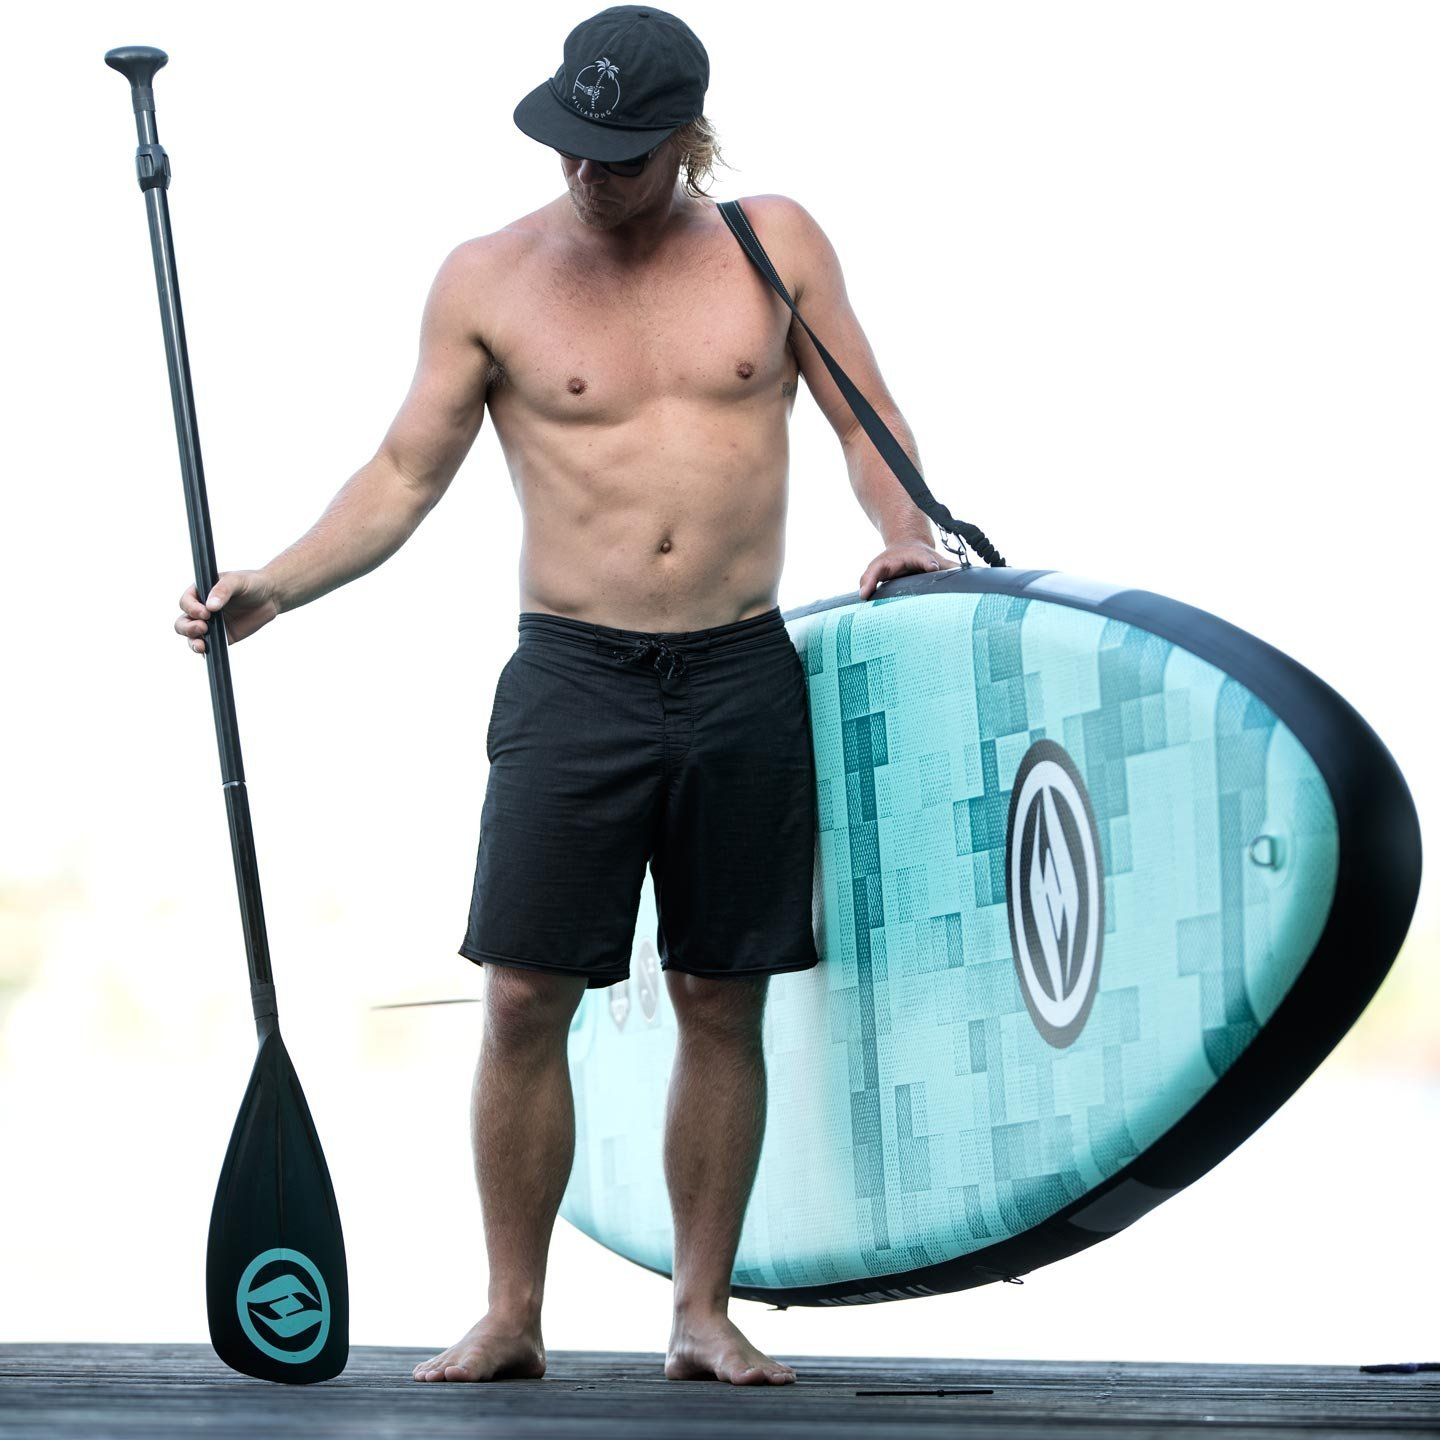 Amazon.com: Hyperlite Admiral inflable SUP paquete – 11 ...